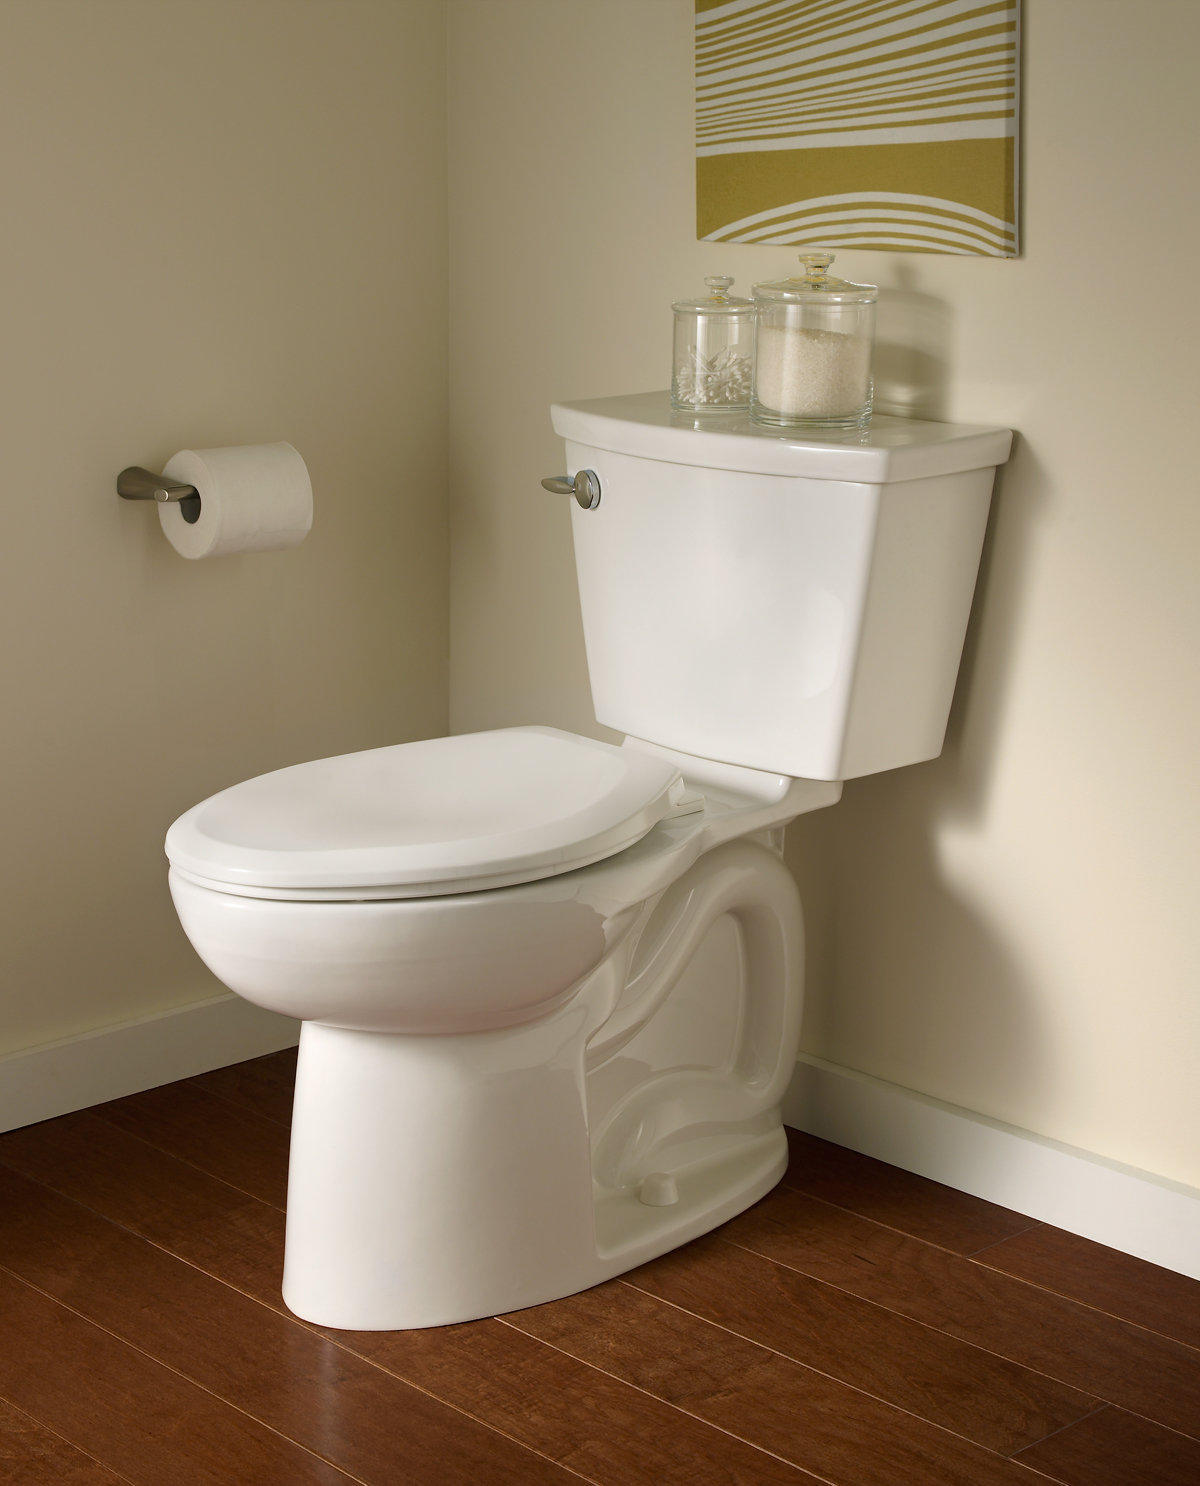 American Standard Toilets : American standard  studio cadet right height